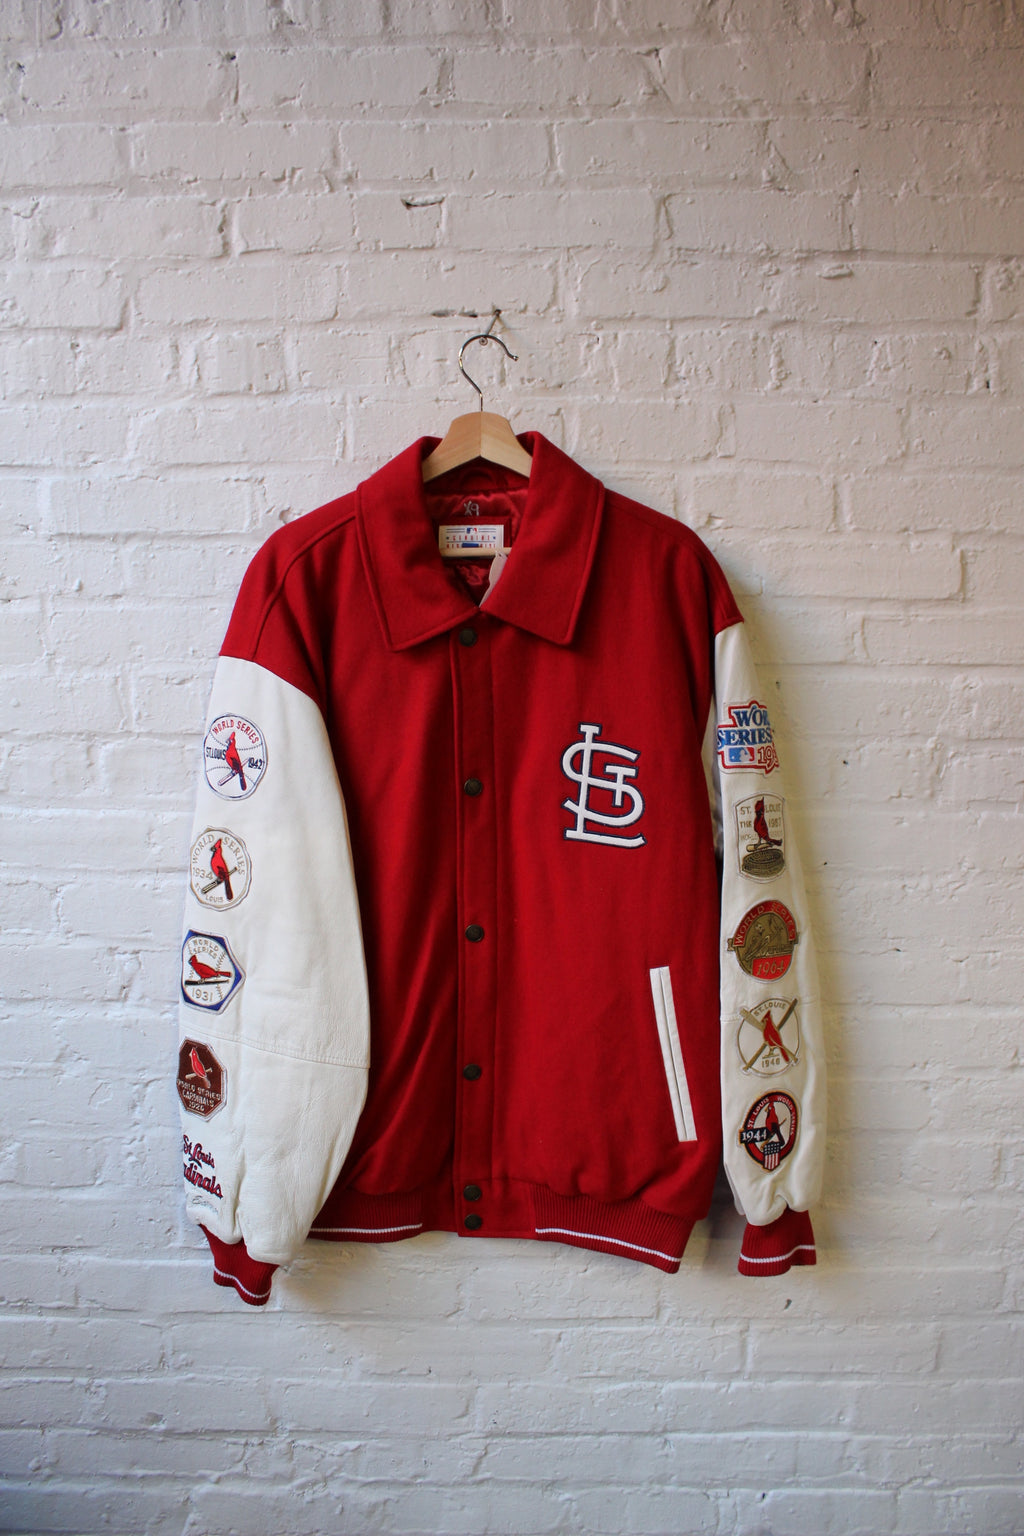 1982 Cardinals All Time Champs Jacket